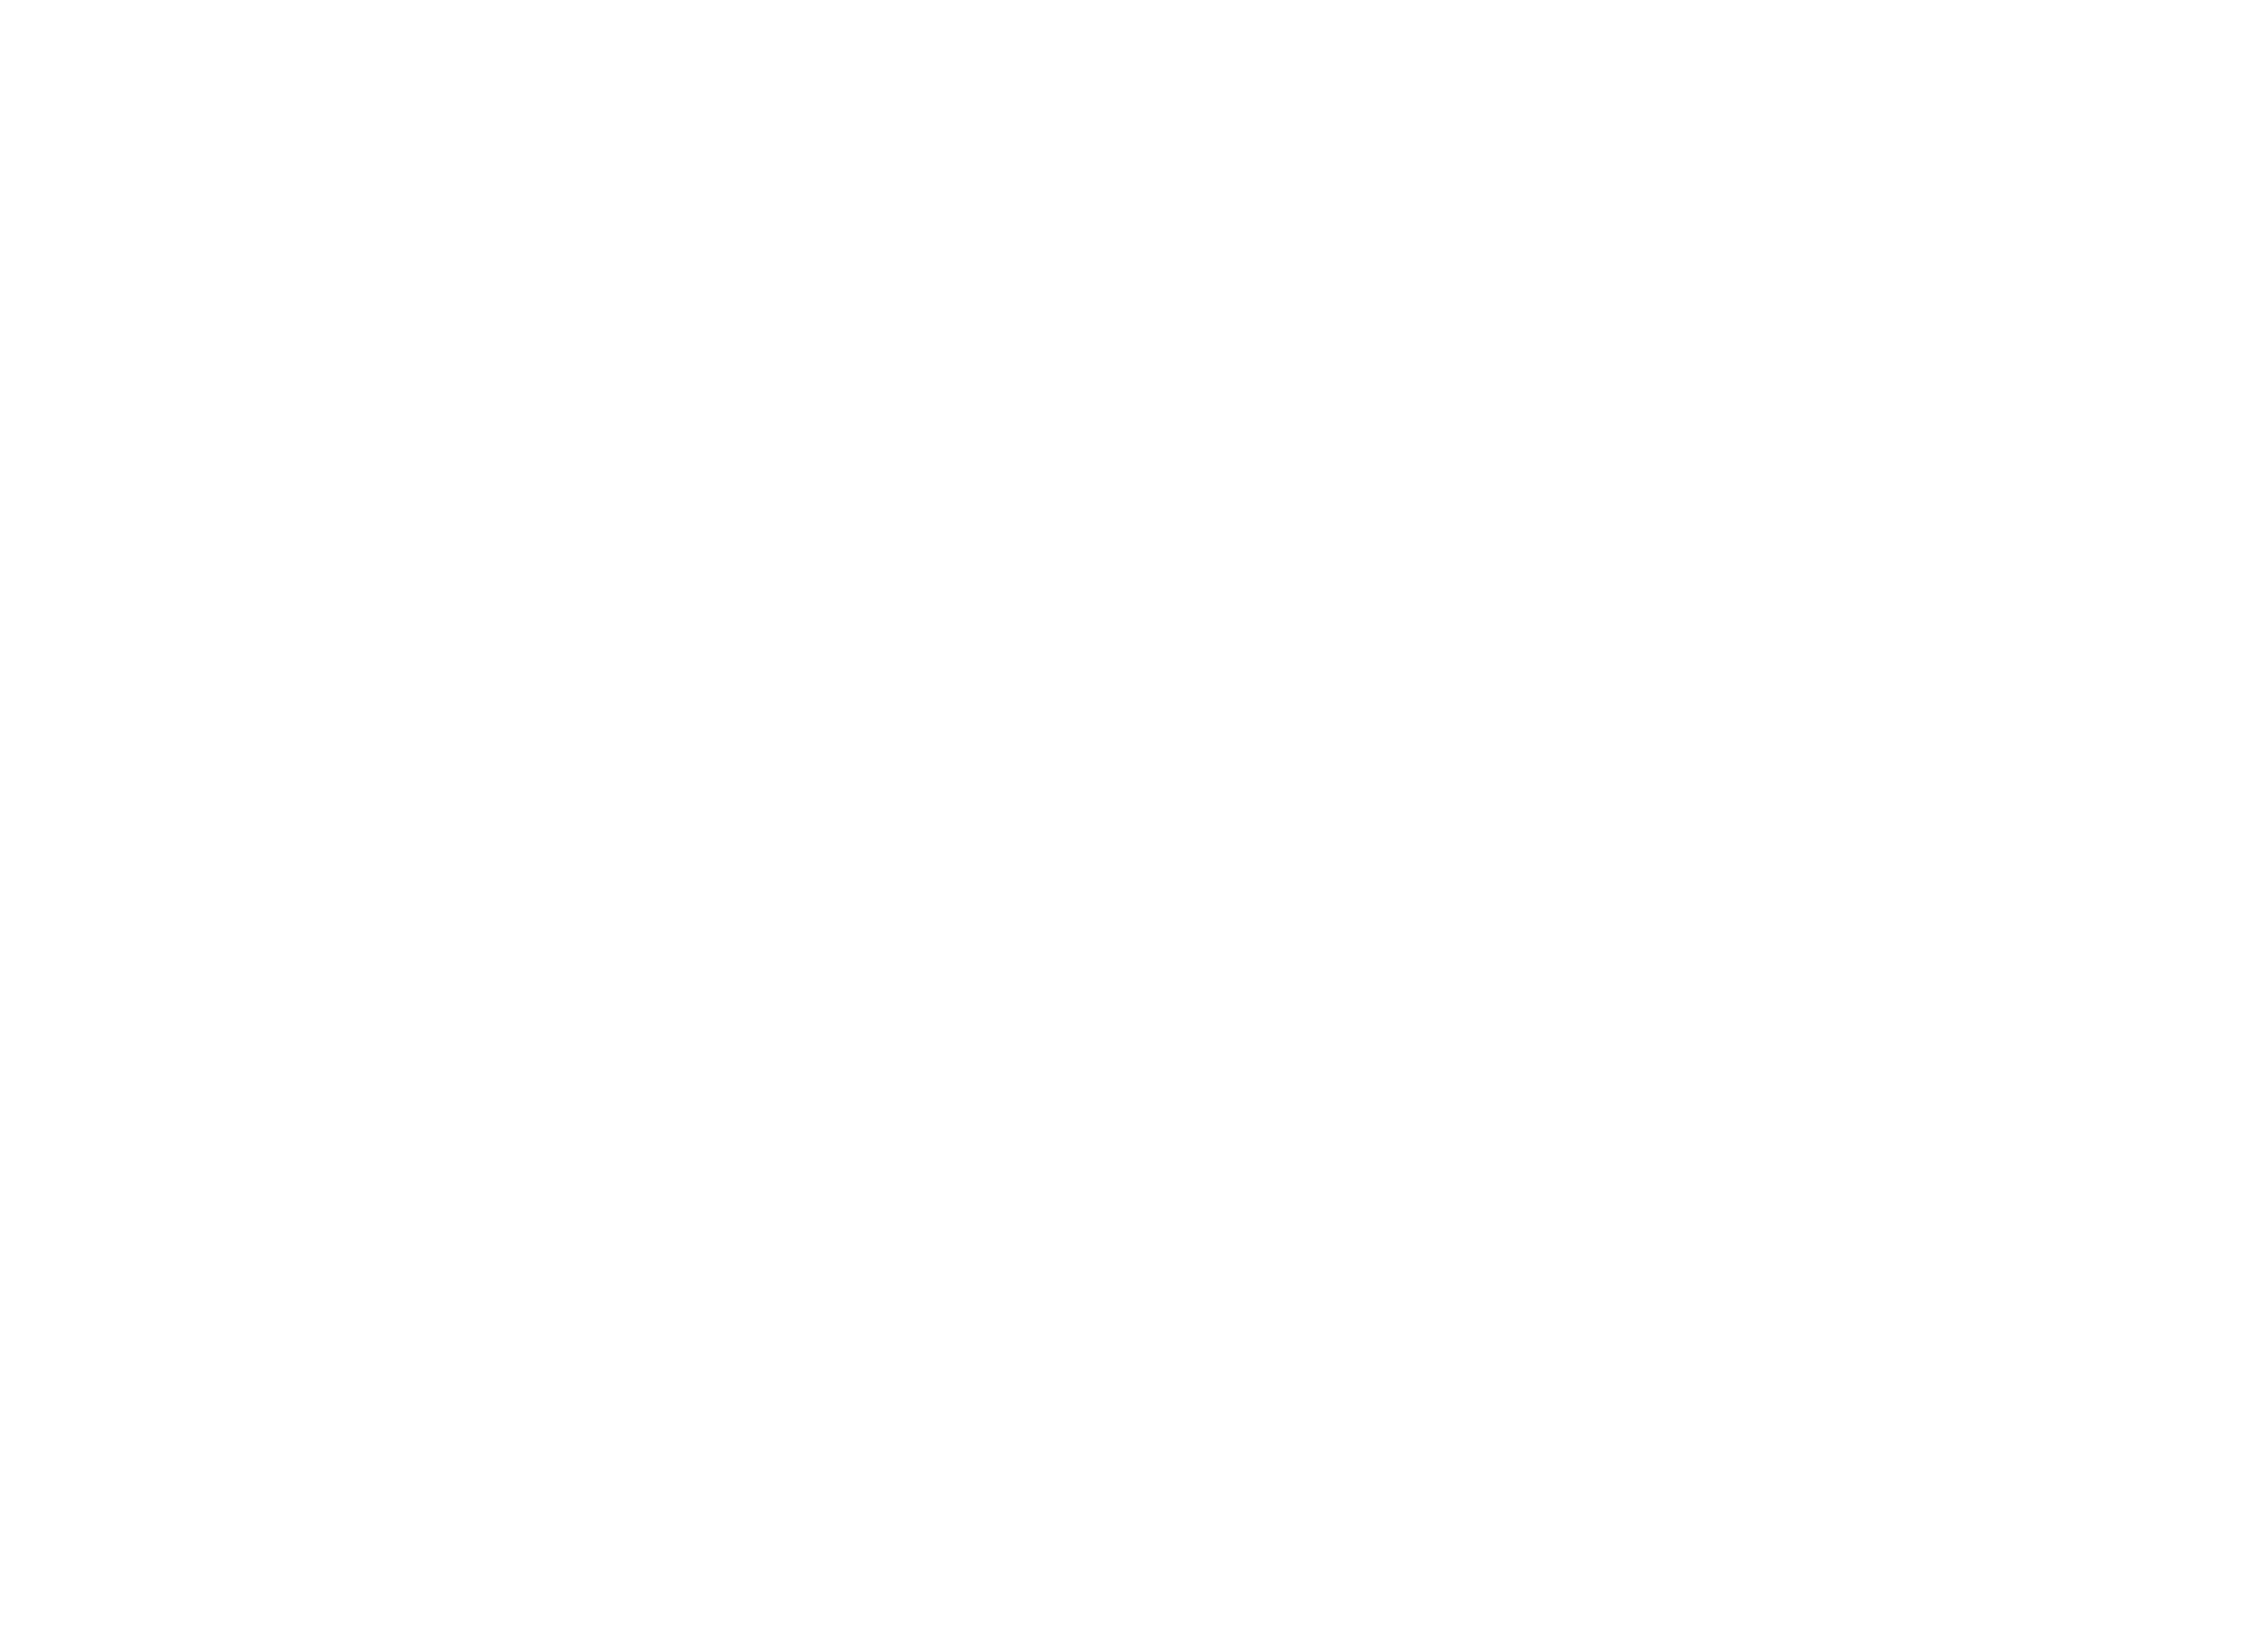 Pennau Craft and Coffee Shop